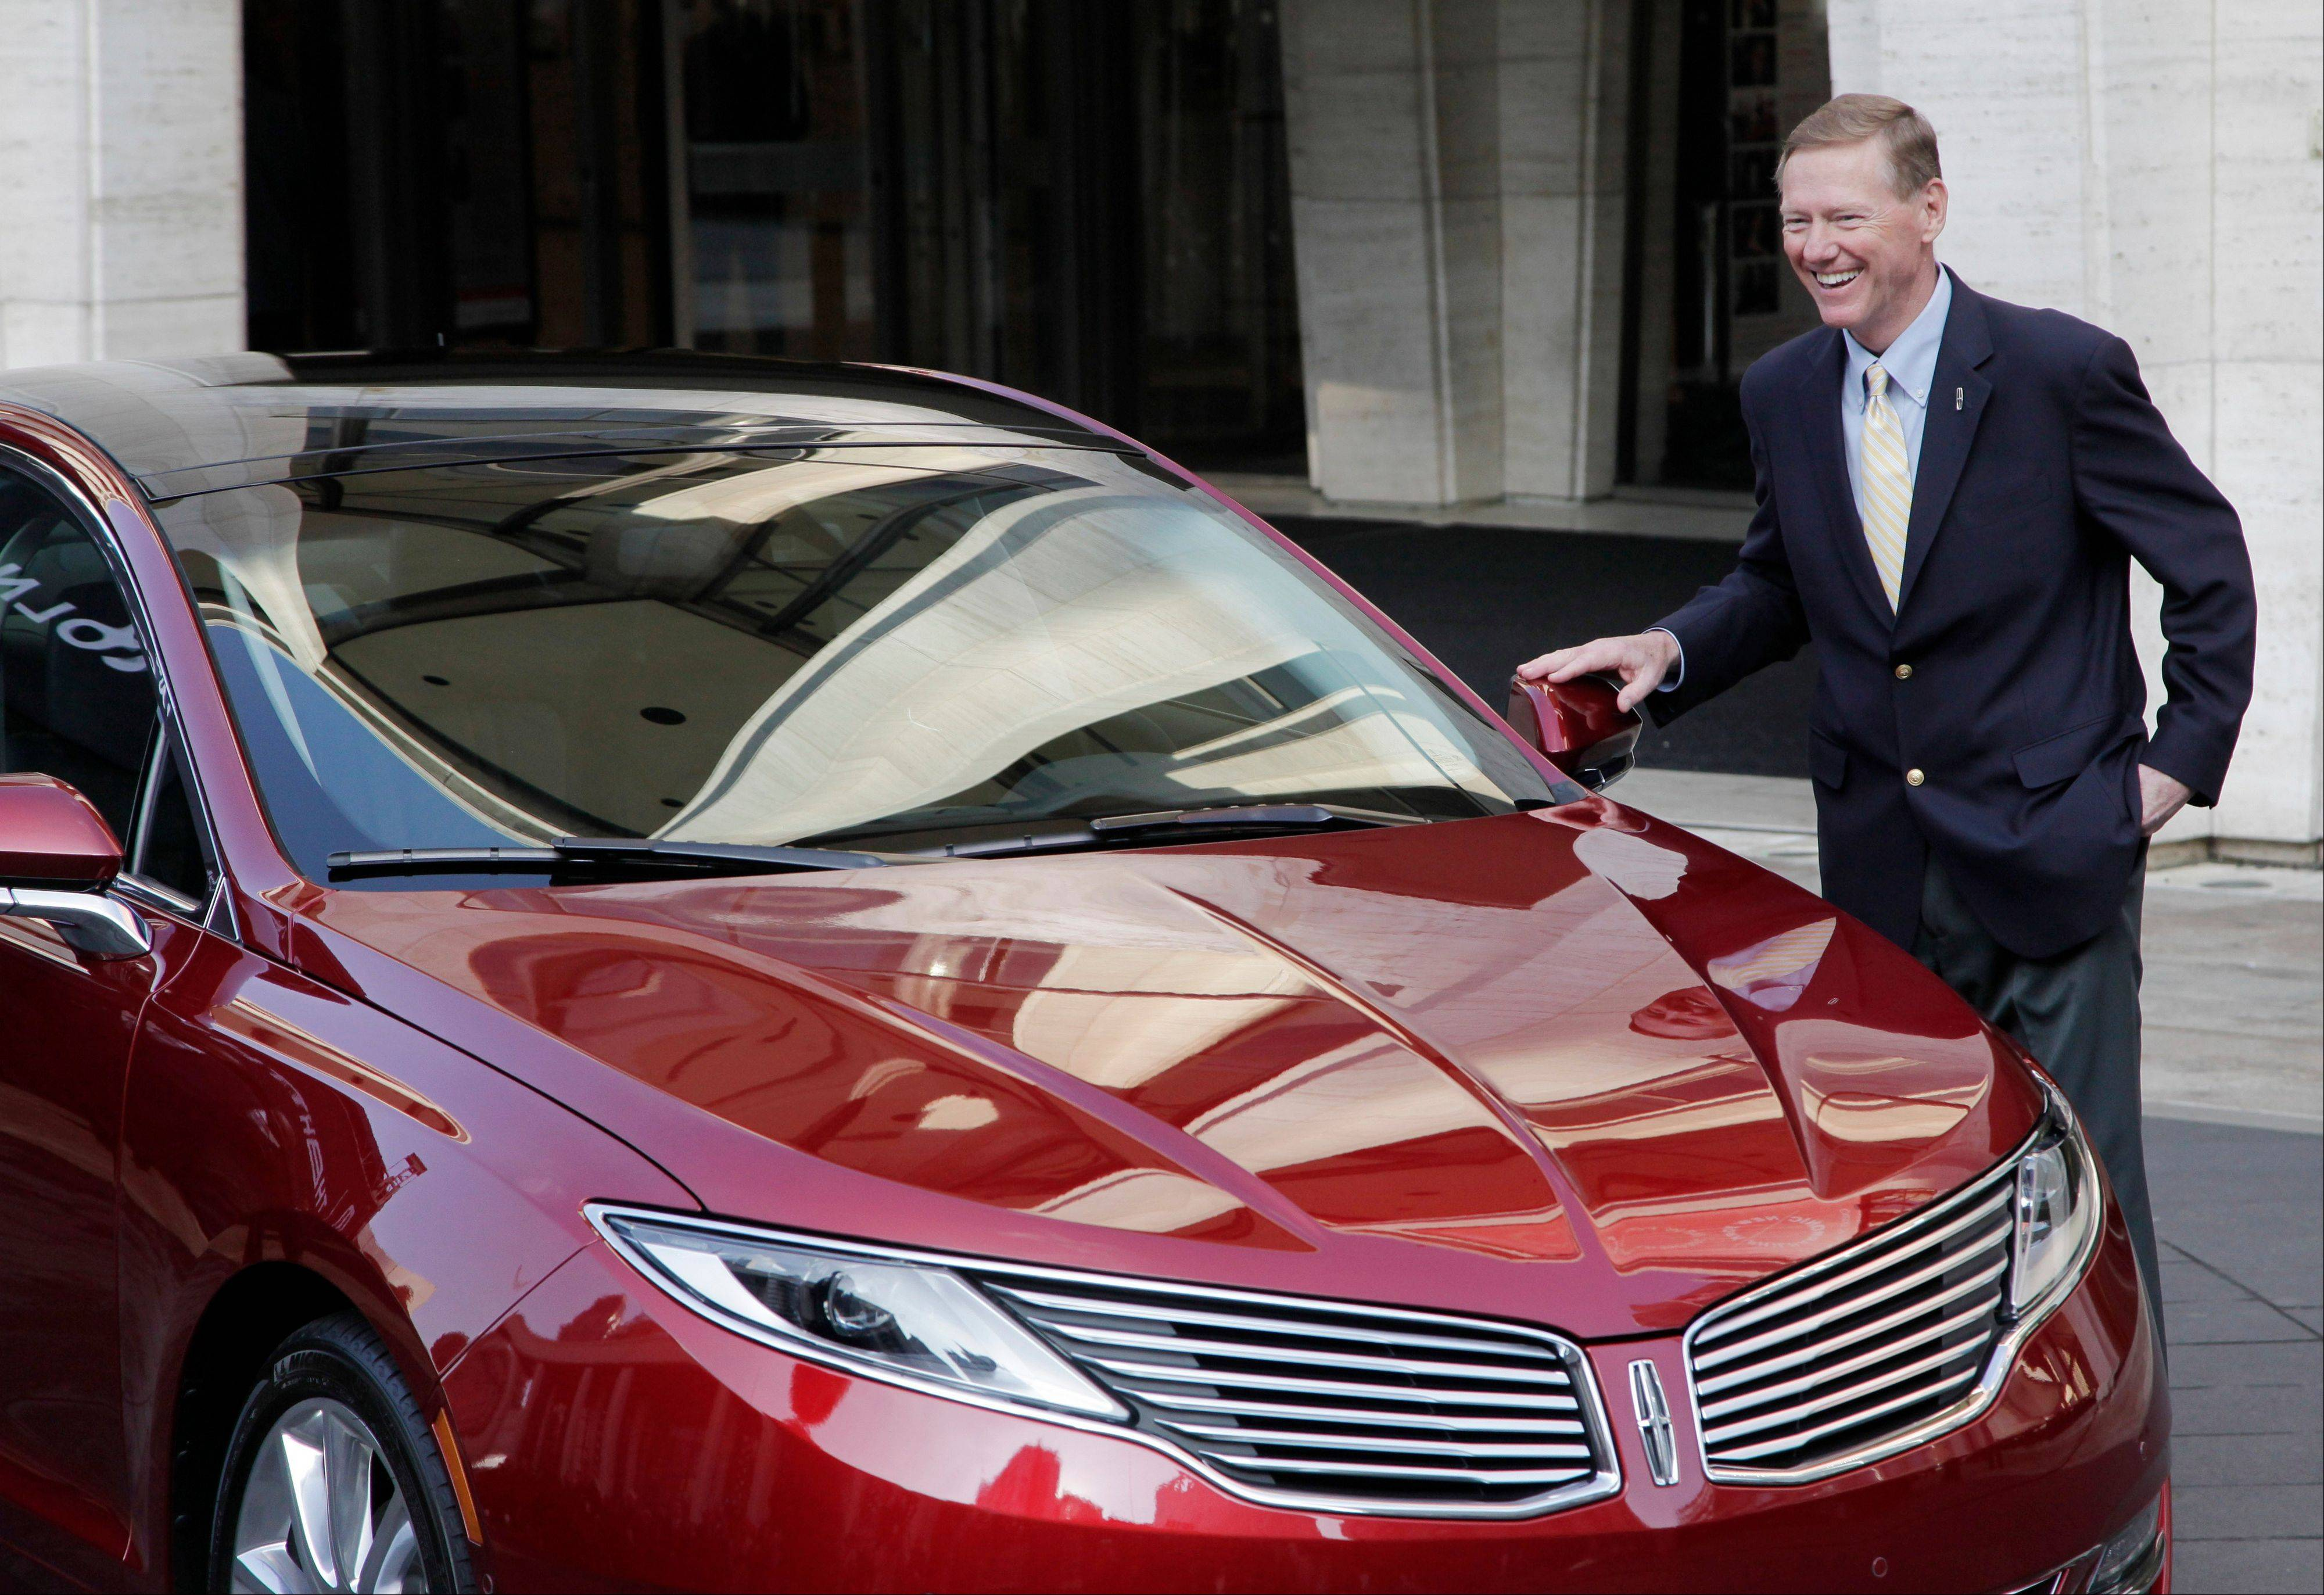 Ford Motor Co. President and CEO Alan Mulally stands beside a Lincoln MKZ during a press conference Monday in New York. The MKZ, the first of seven new or revamped Lincolns that will go on sale by 2015, will arrive at dealerships this month.